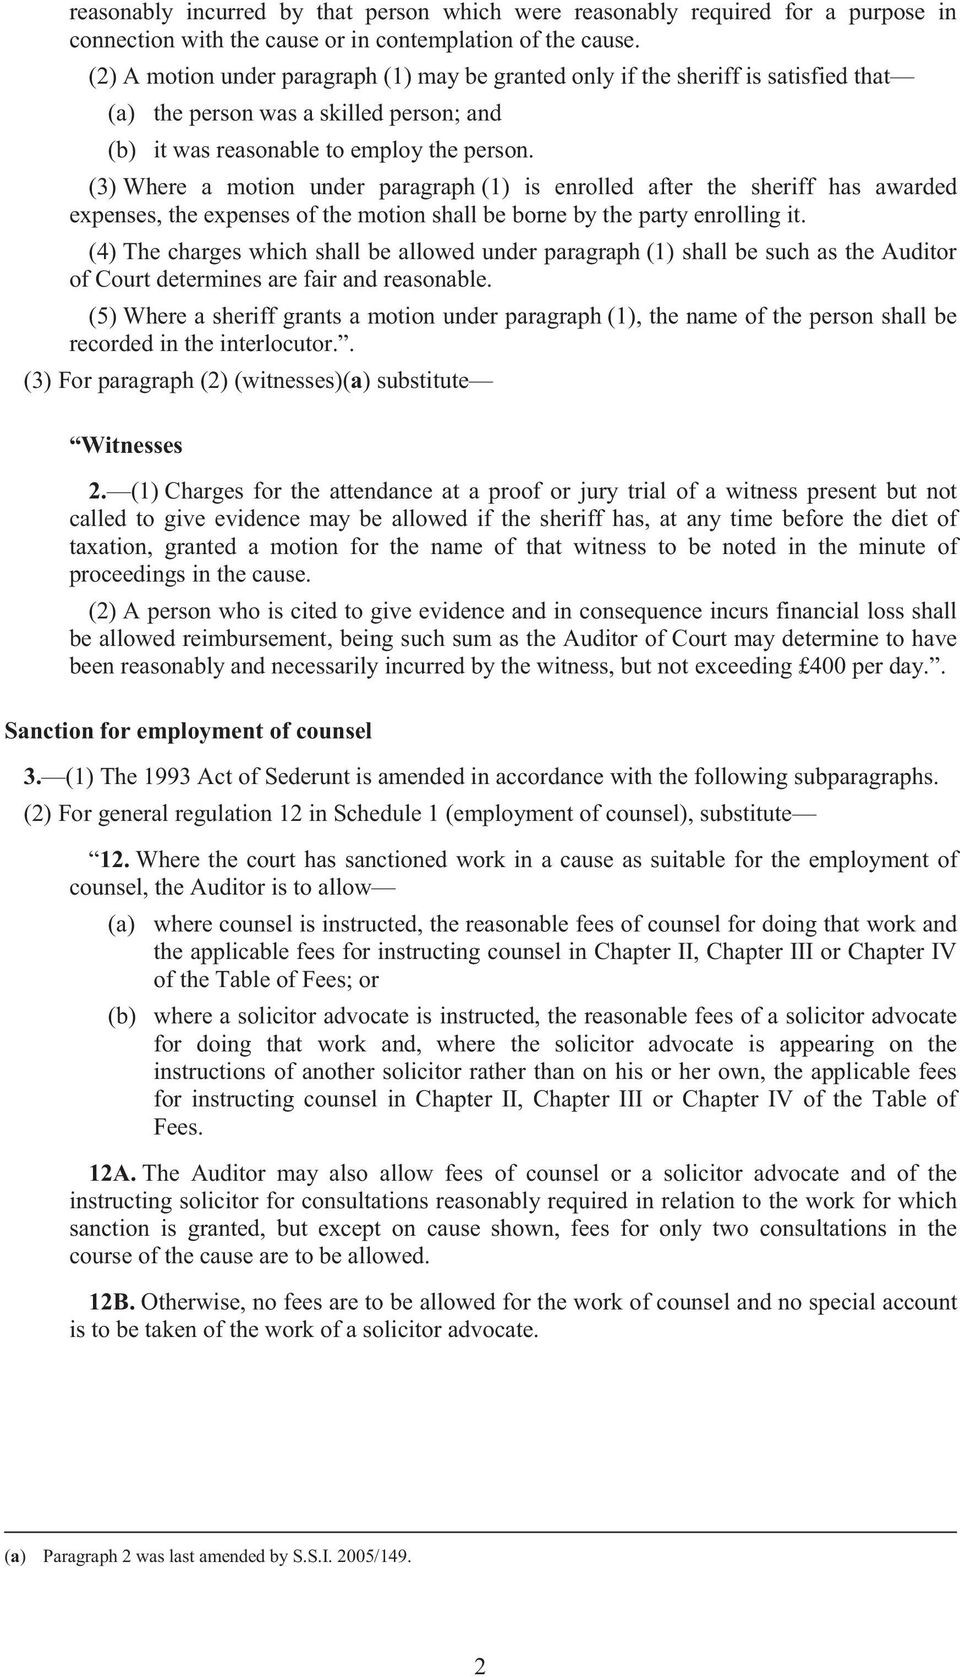 (3) Where a motion under paragraph (1) is enrolled after the sheriff has awarded expenses, the expenses of the motion shall be borne by the party enrolling it.